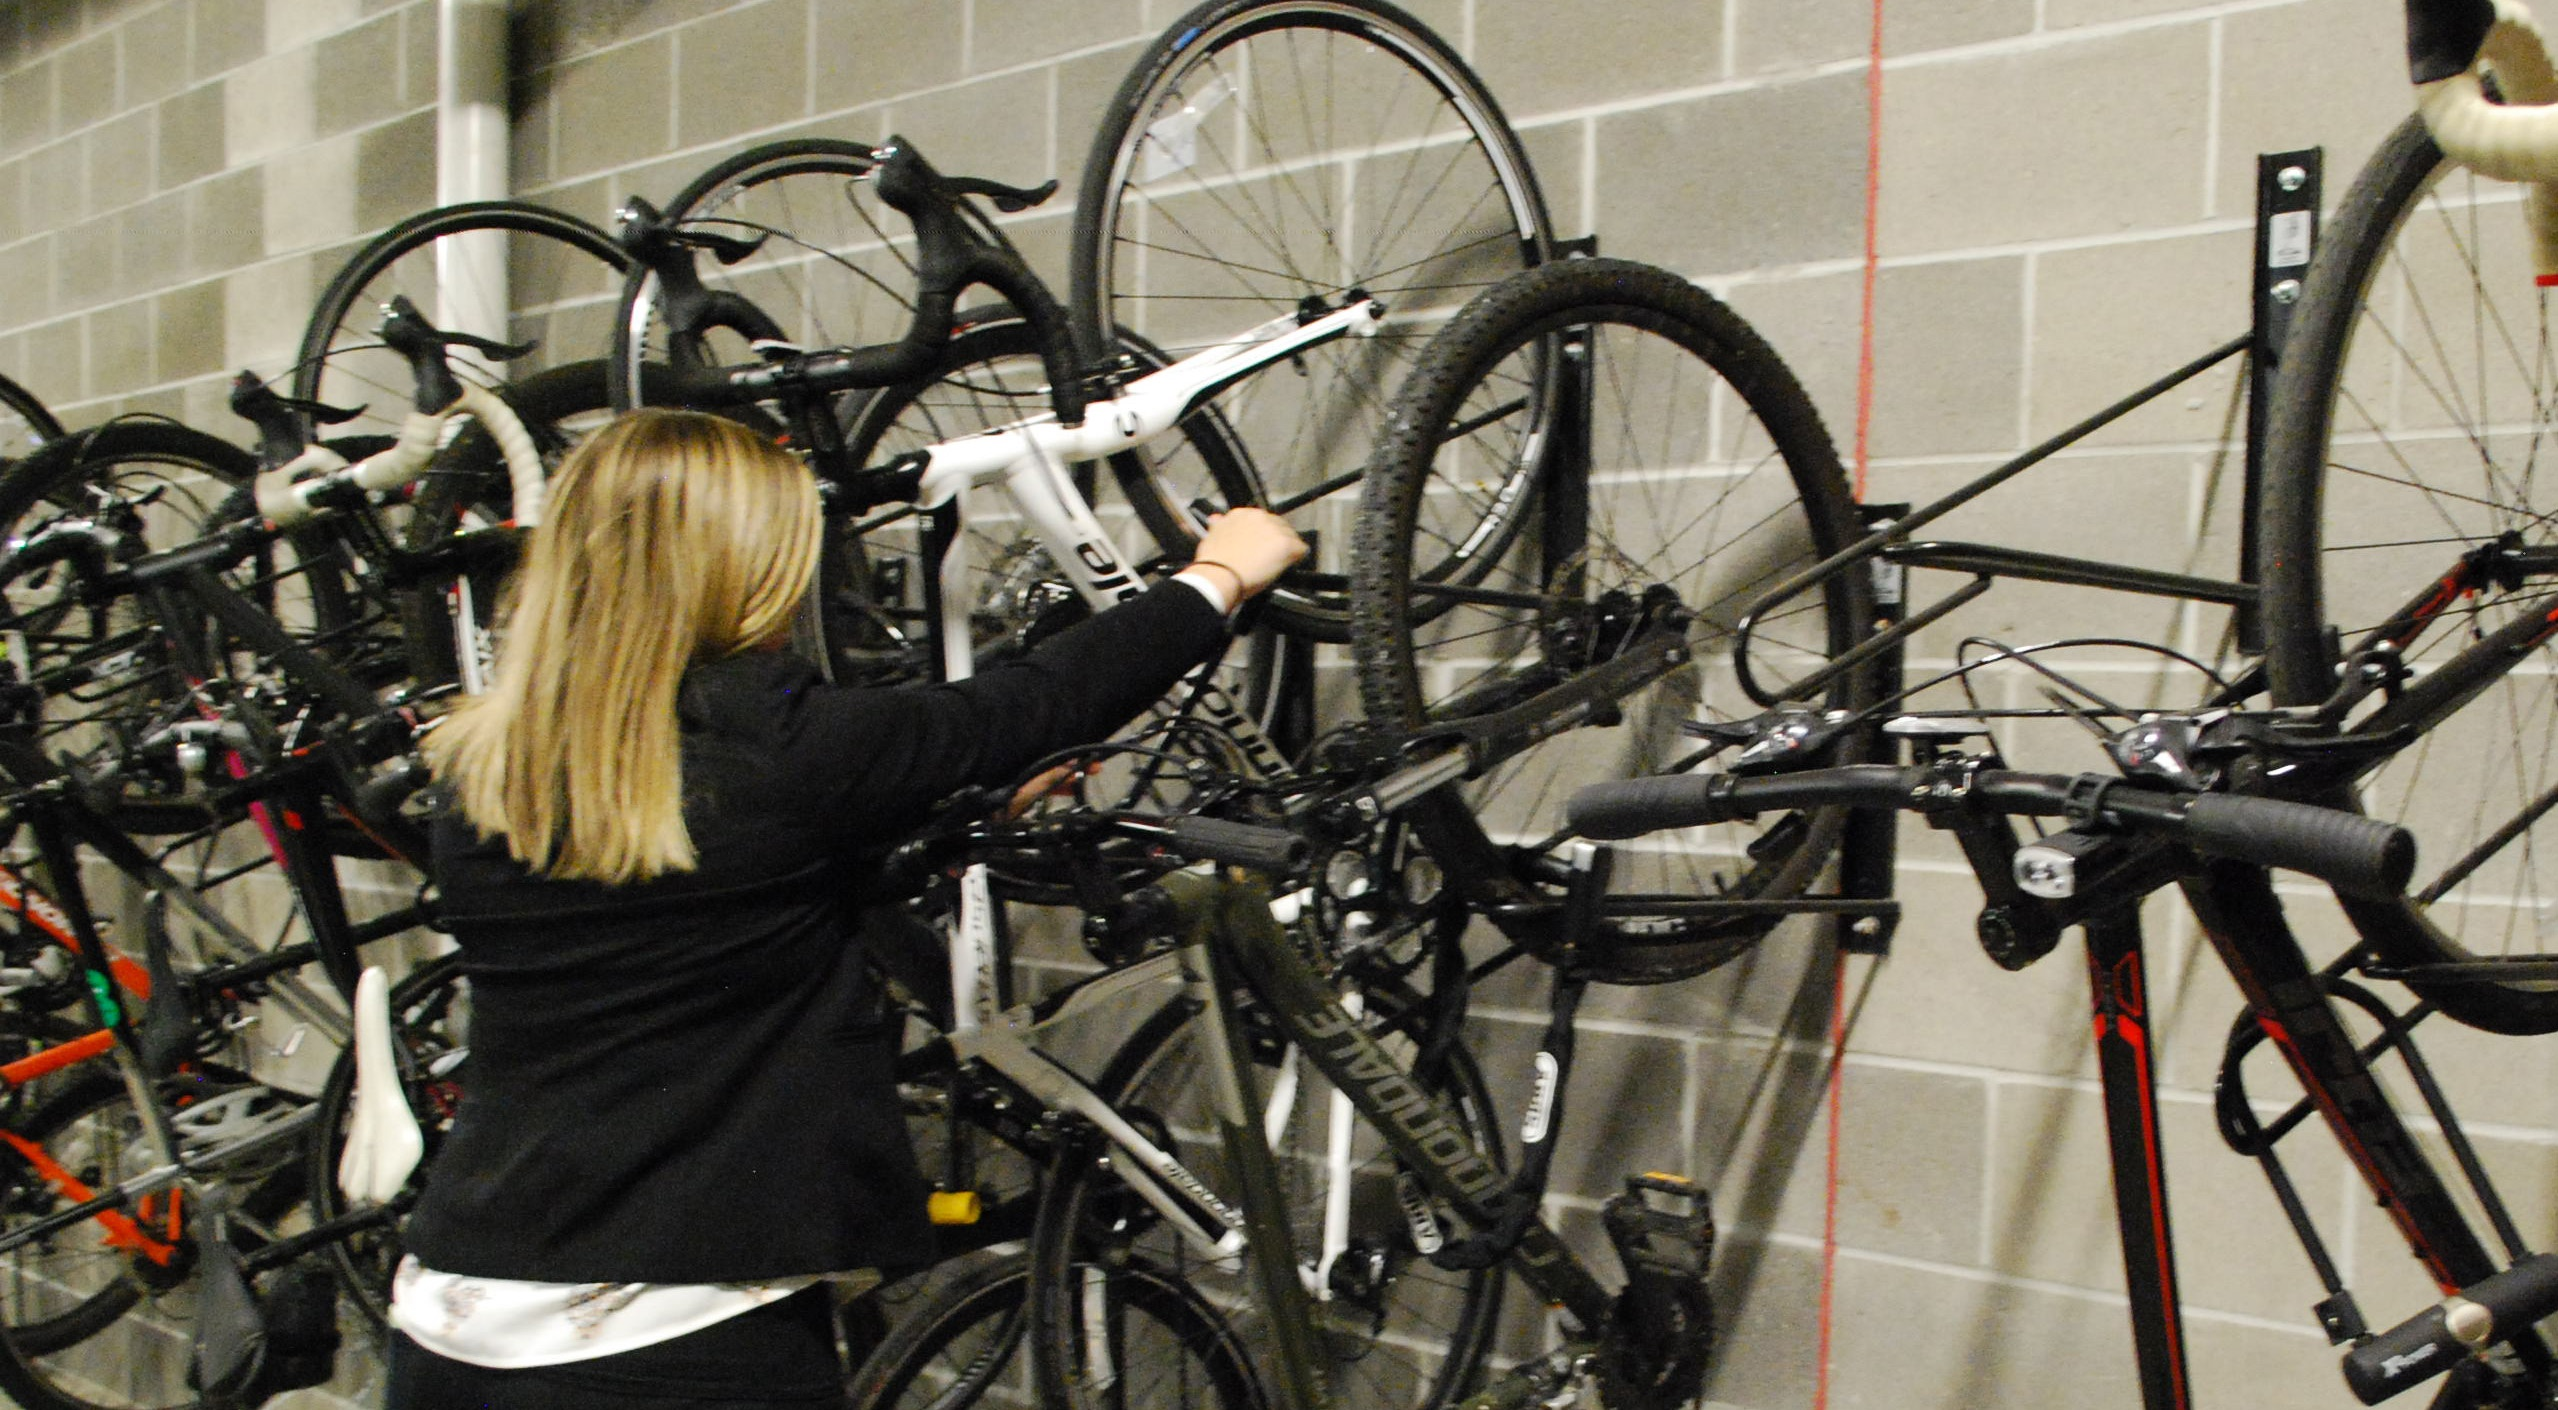 Bike Storage Header Image 1.jpg